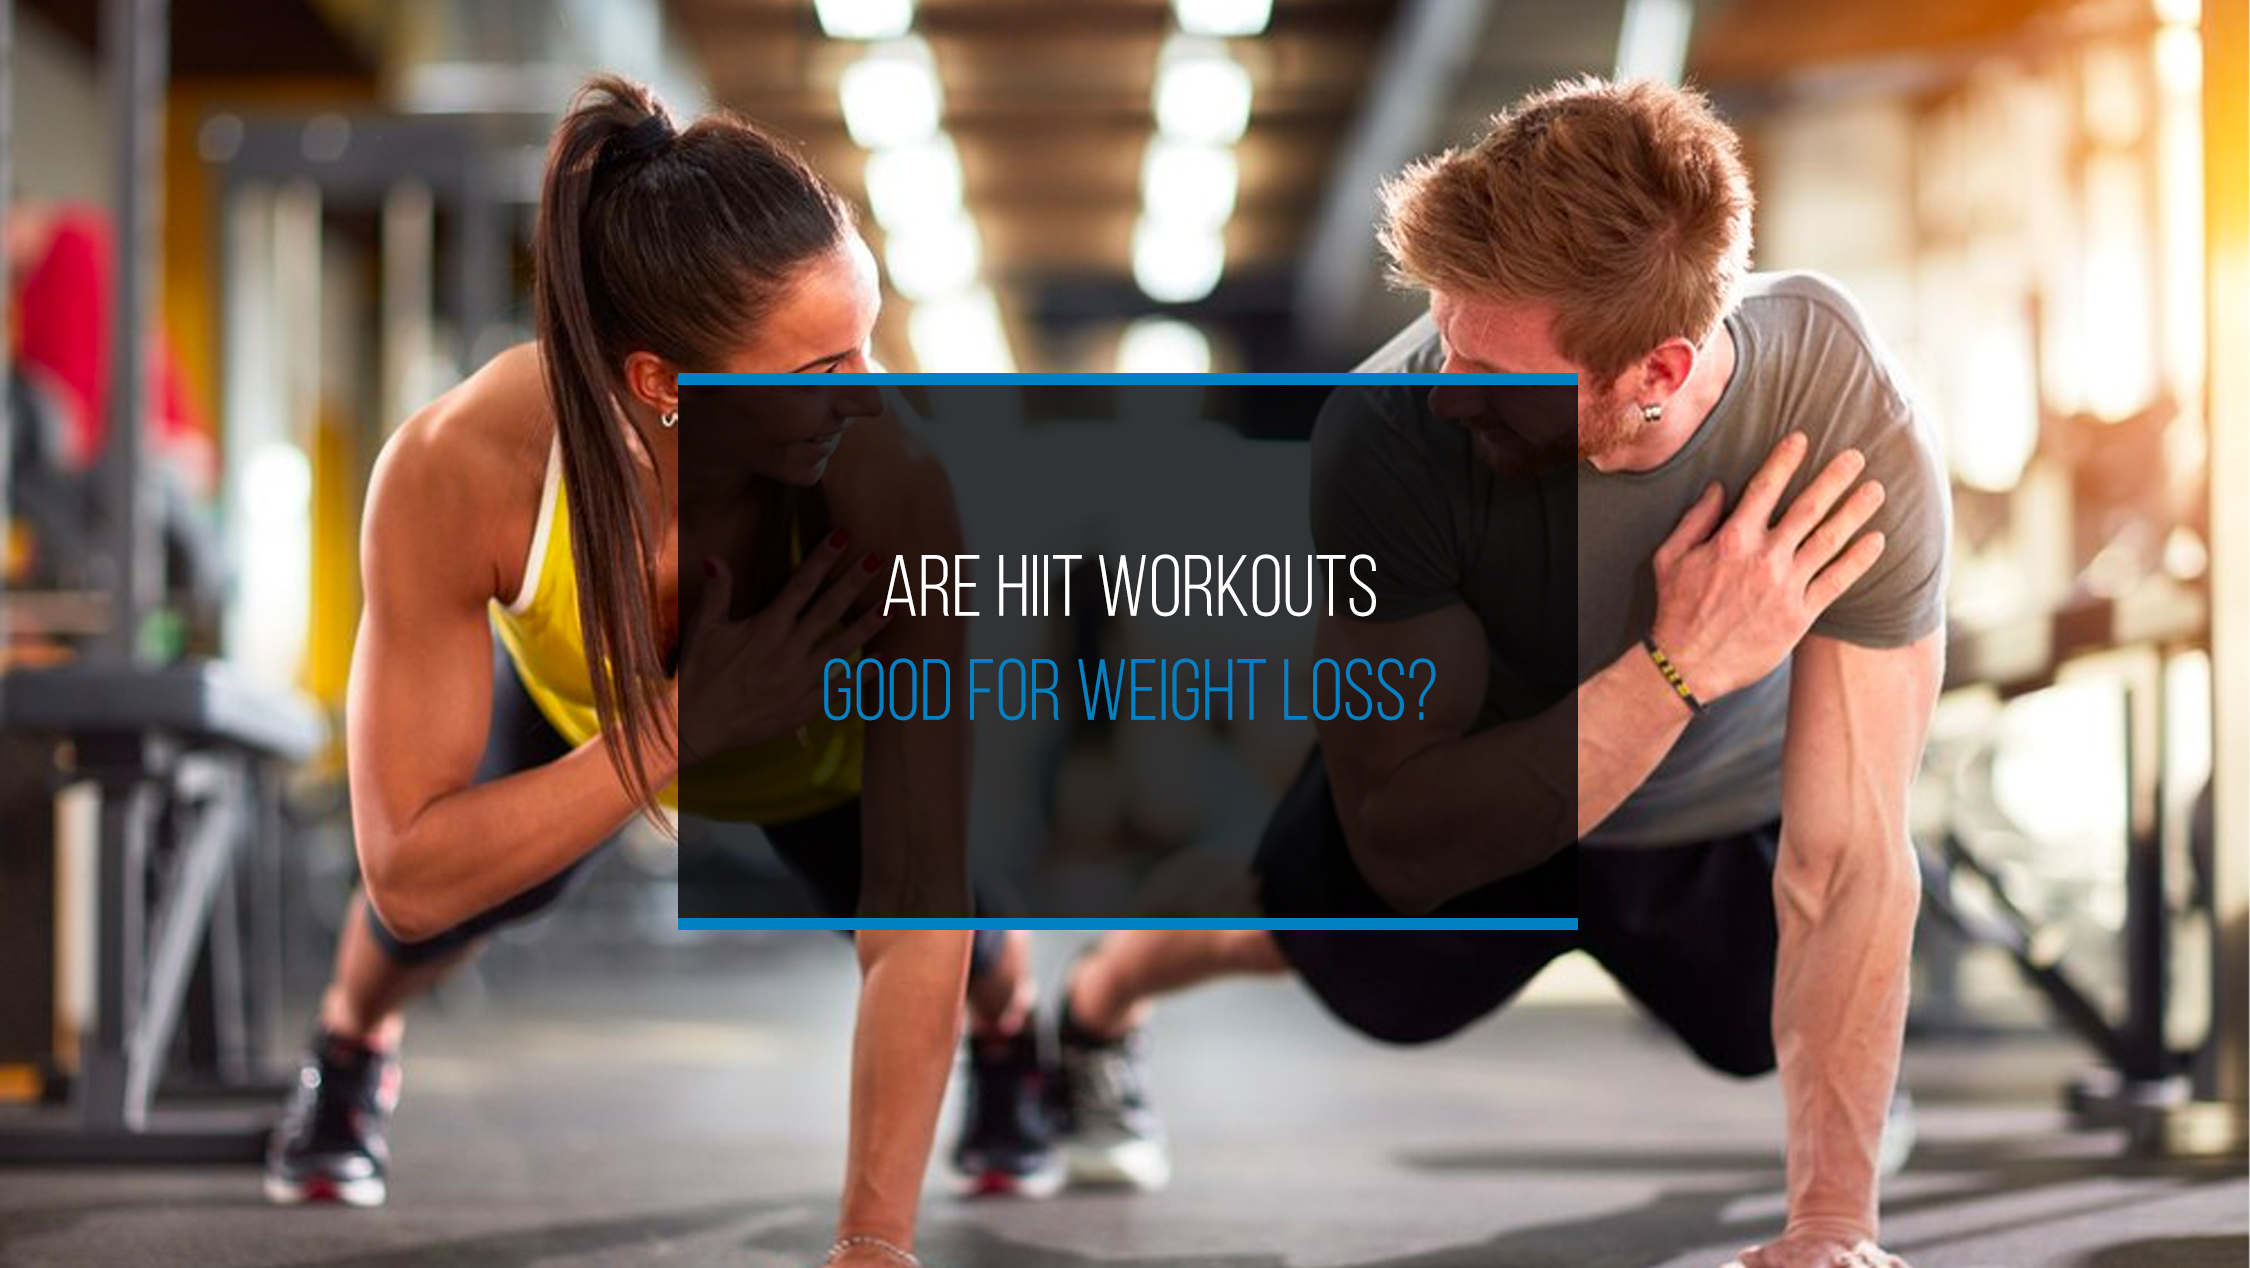 Are HIIT workouts good for weight loss - WP